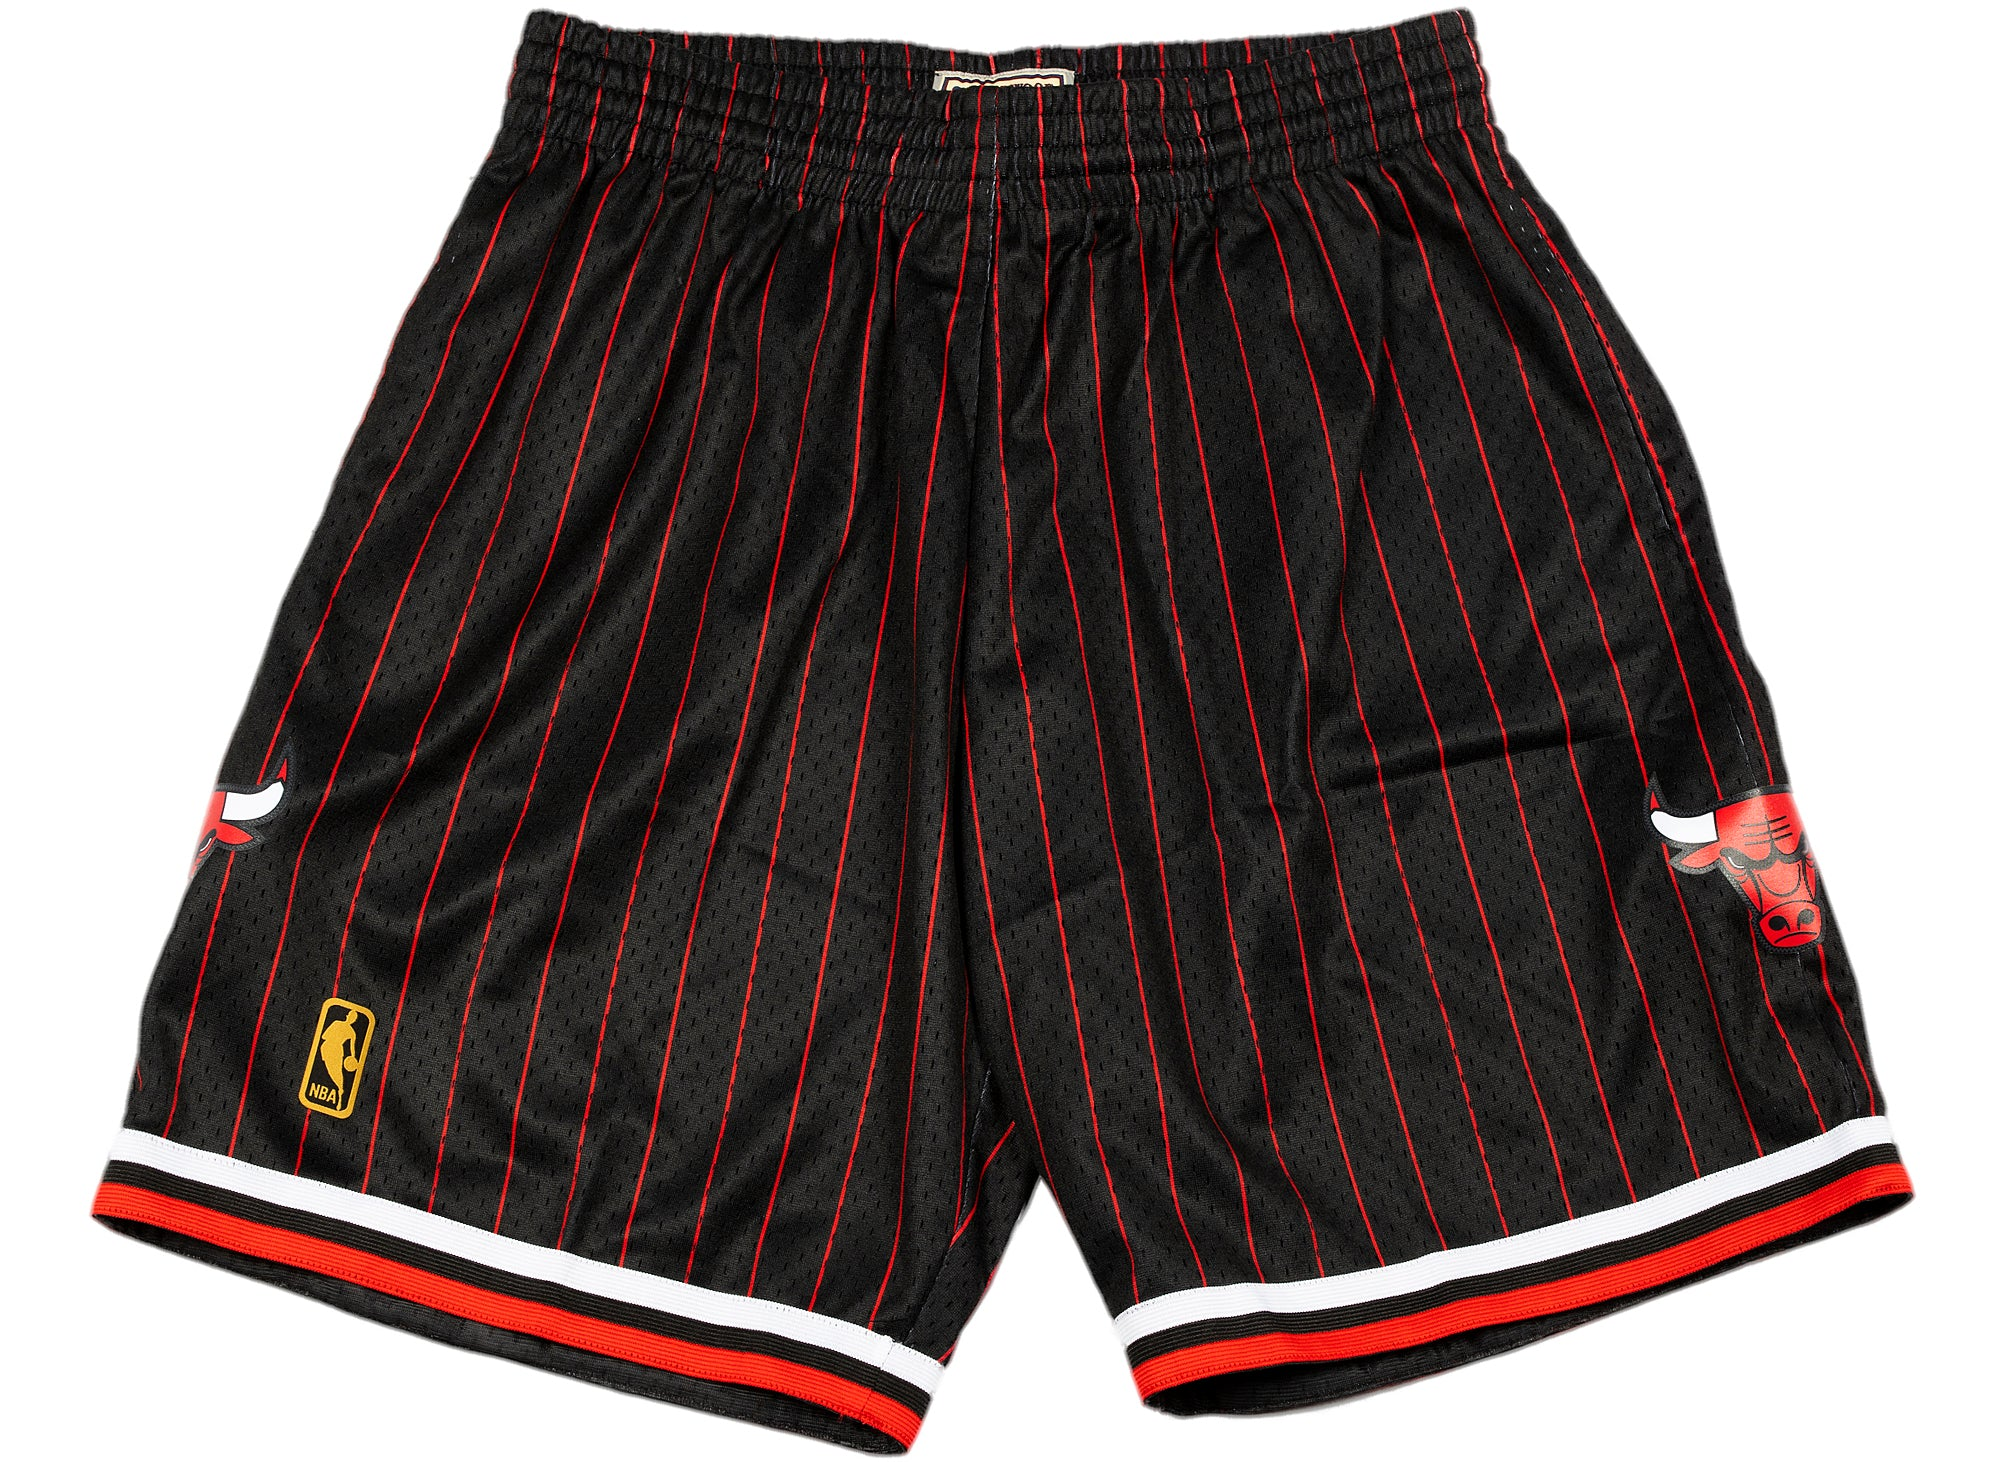 Mitchell & Ness NBA Swingman Shorts Chicago Bulls Alternate 1996-97 xld